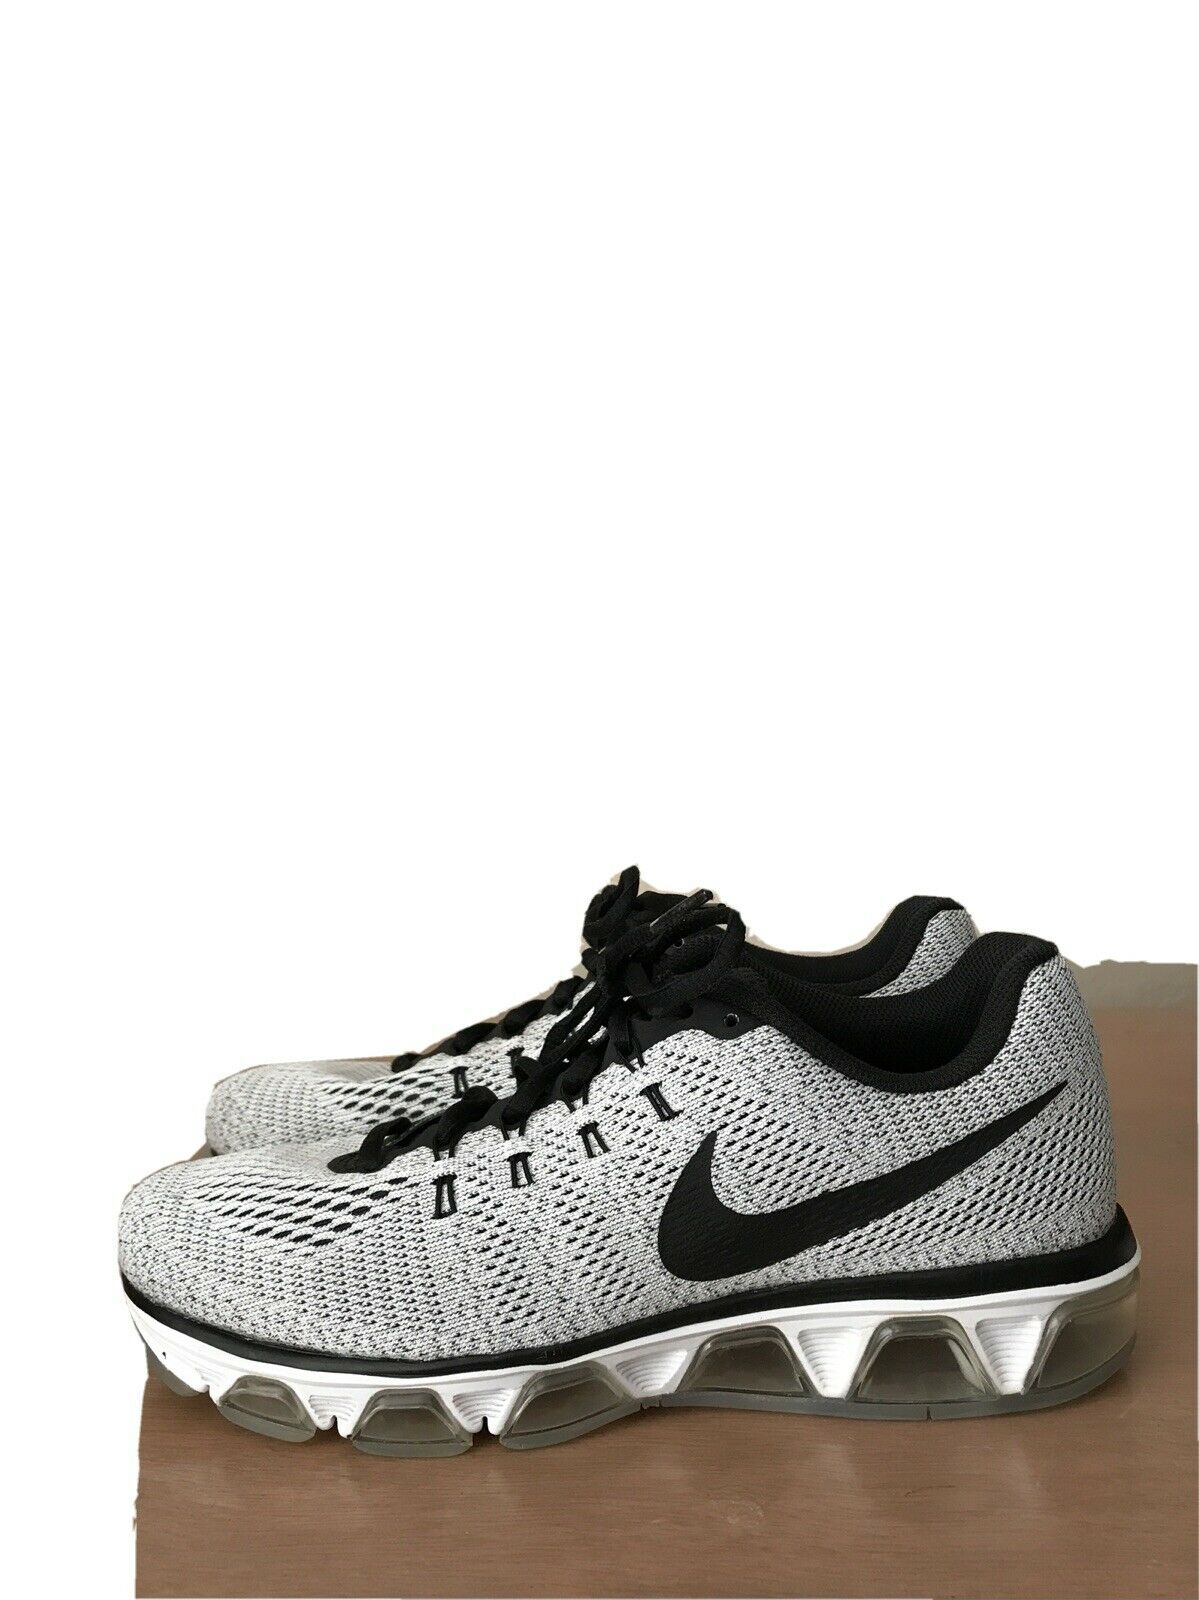 cuenca Correo Integrar  Size 8 - Nike Air Max Tailwind 8 White for sale online | eBay